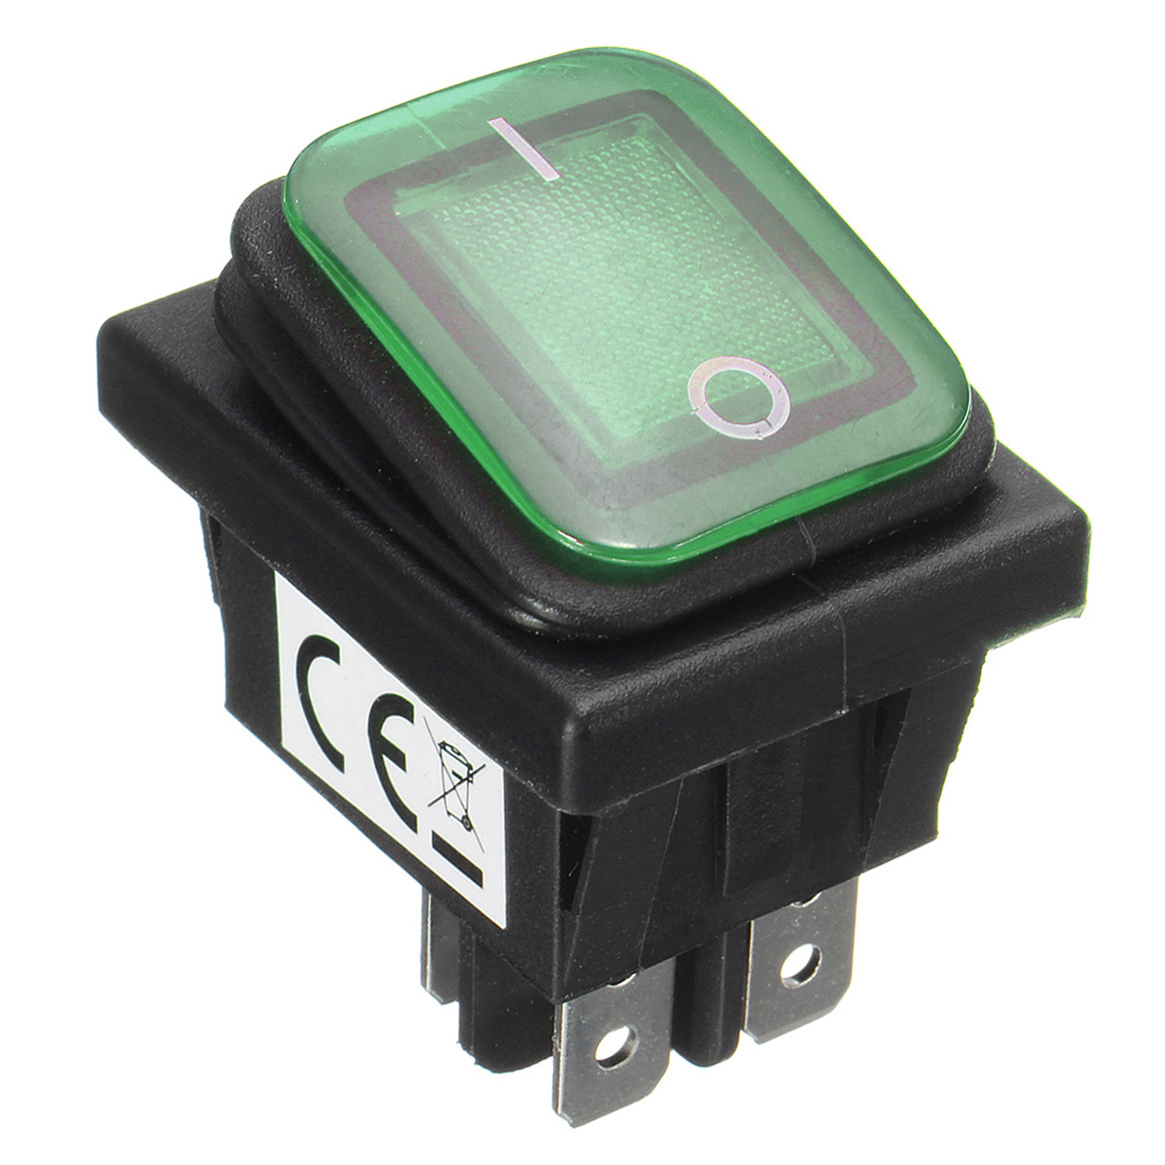 Waterproof 12V 16A Rocker Reset Single Toggle Switch With LED Light Dpst For Car Boat